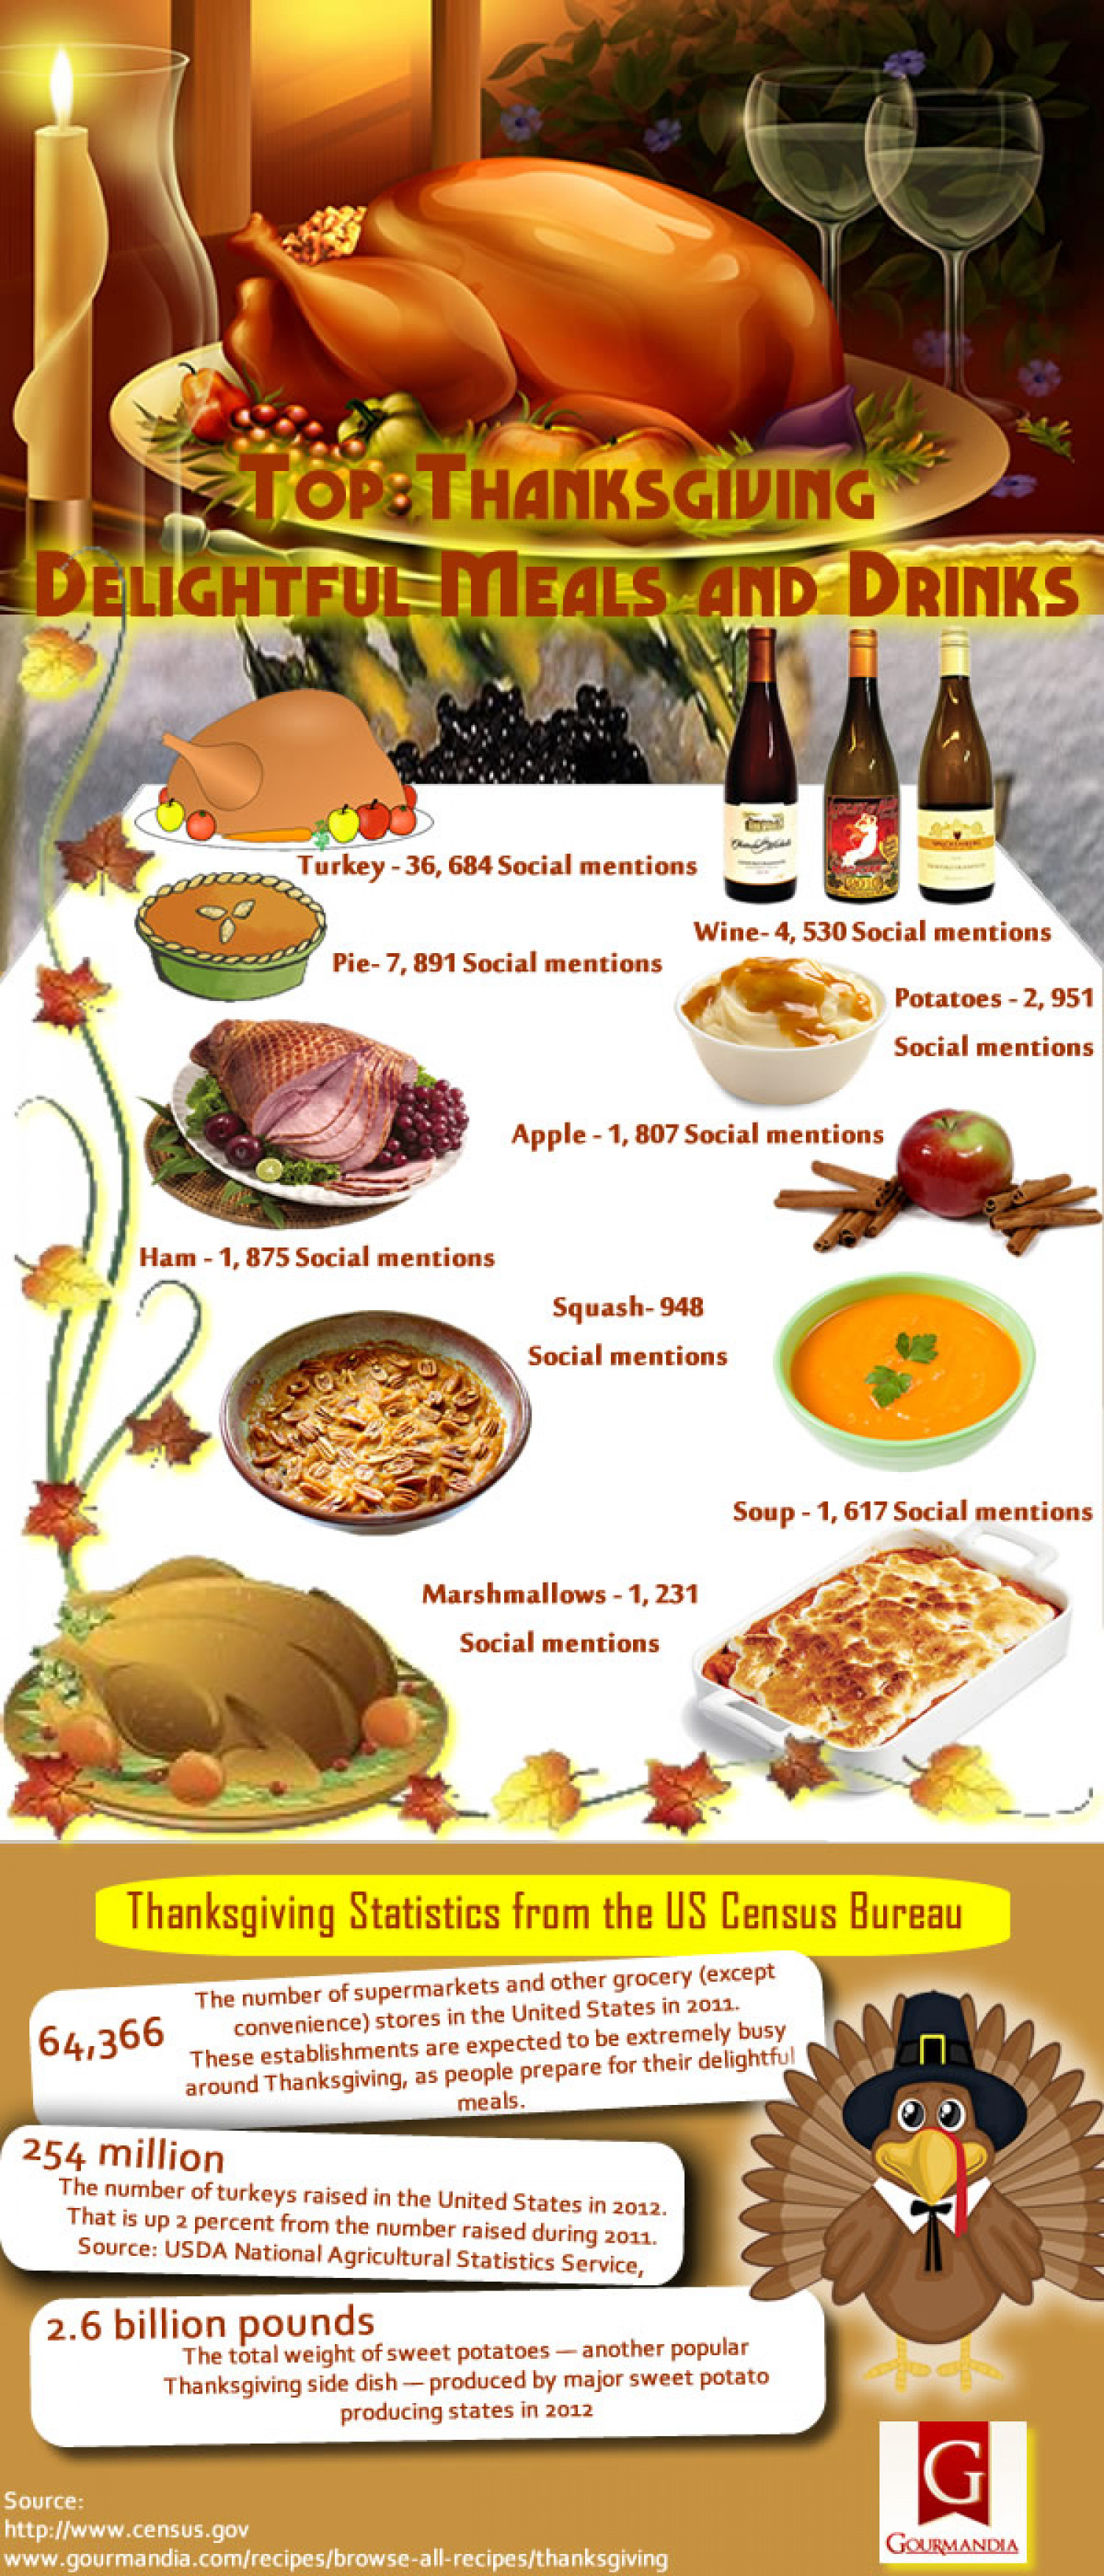 Top Thanksgiving Delightful Meals and Drinks Infographic